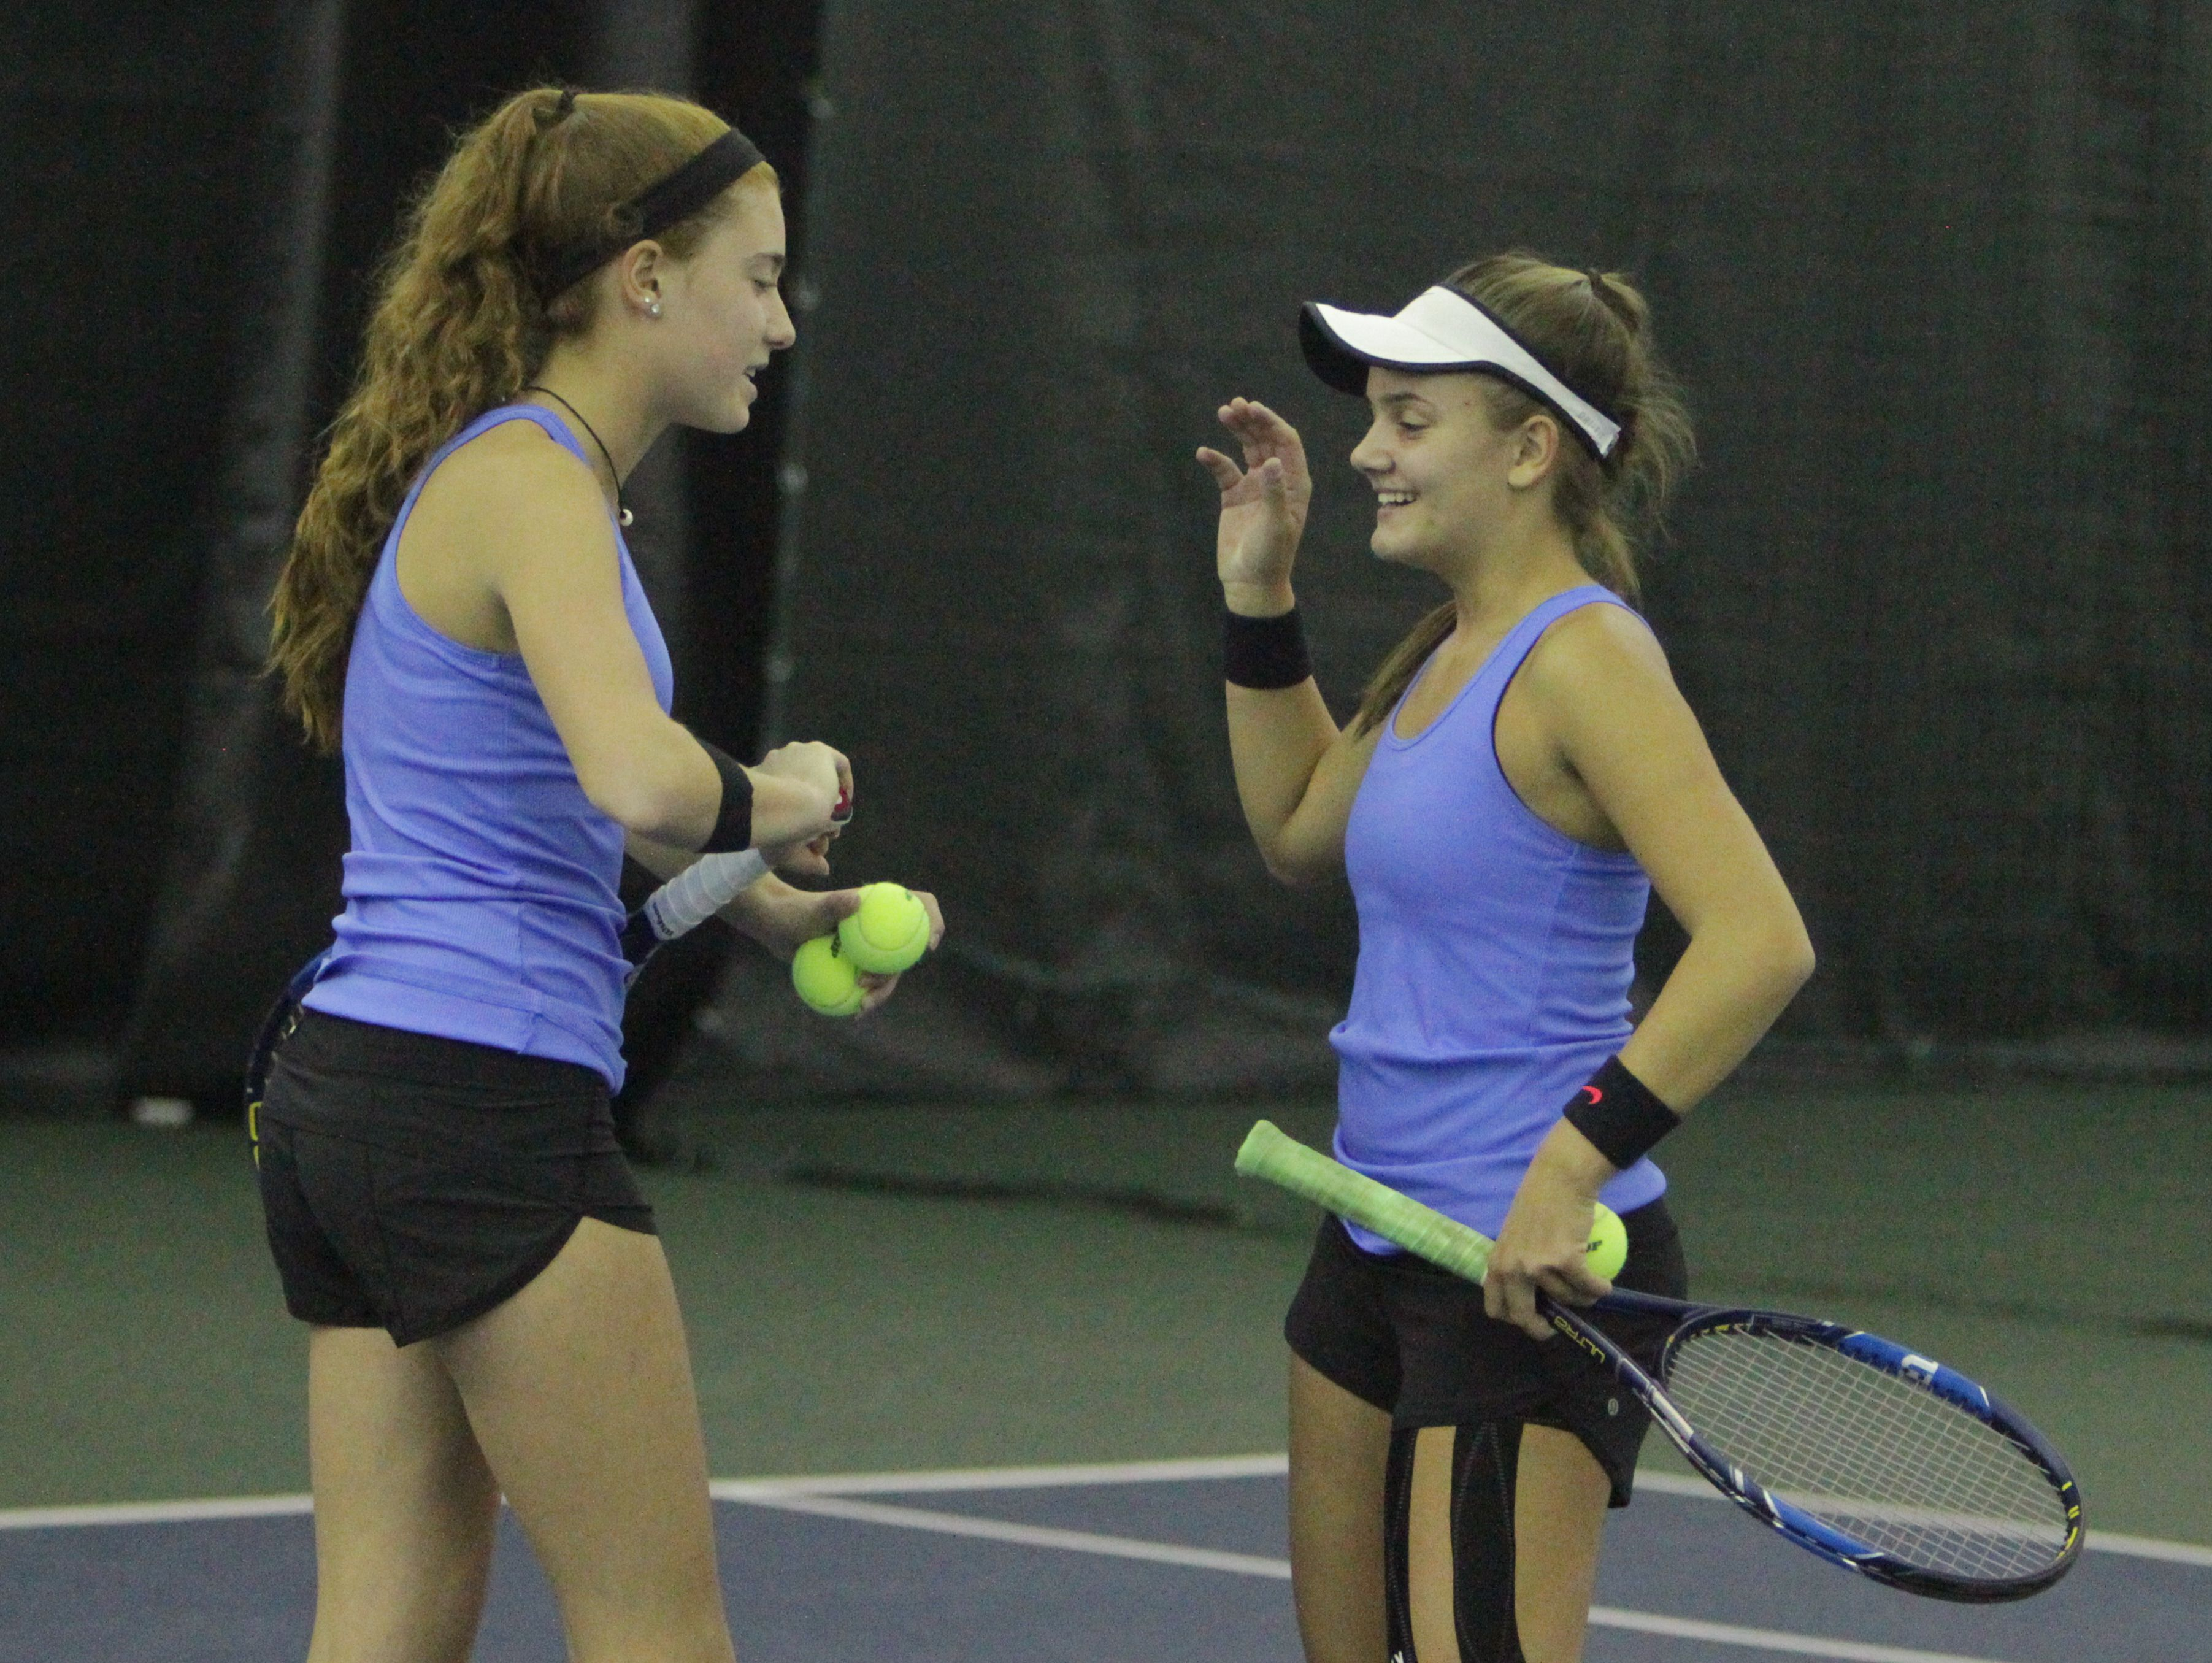 Ursuline's Vanessa Ciano and Laina Campos congratulate each other after winning a point during the 2016 Section 1 Tennis Tournament finals at Sound Shore Indoor Tennis in Port Chester on Sunday, Oct. 23rd, 2016.